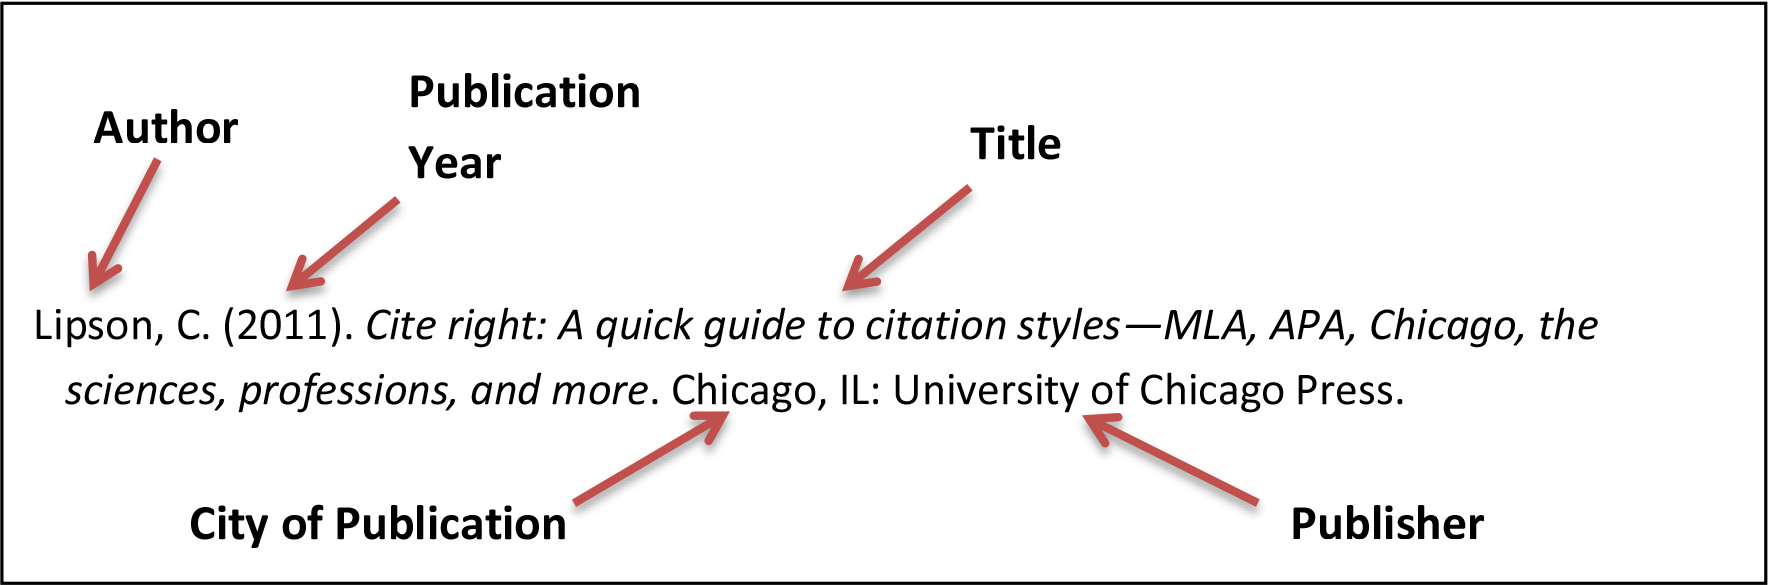 how do you cite an essay in a book in apa format Book – a written work or composition that has been published – typically printed on pages bound together book citations in apa contain the author name.